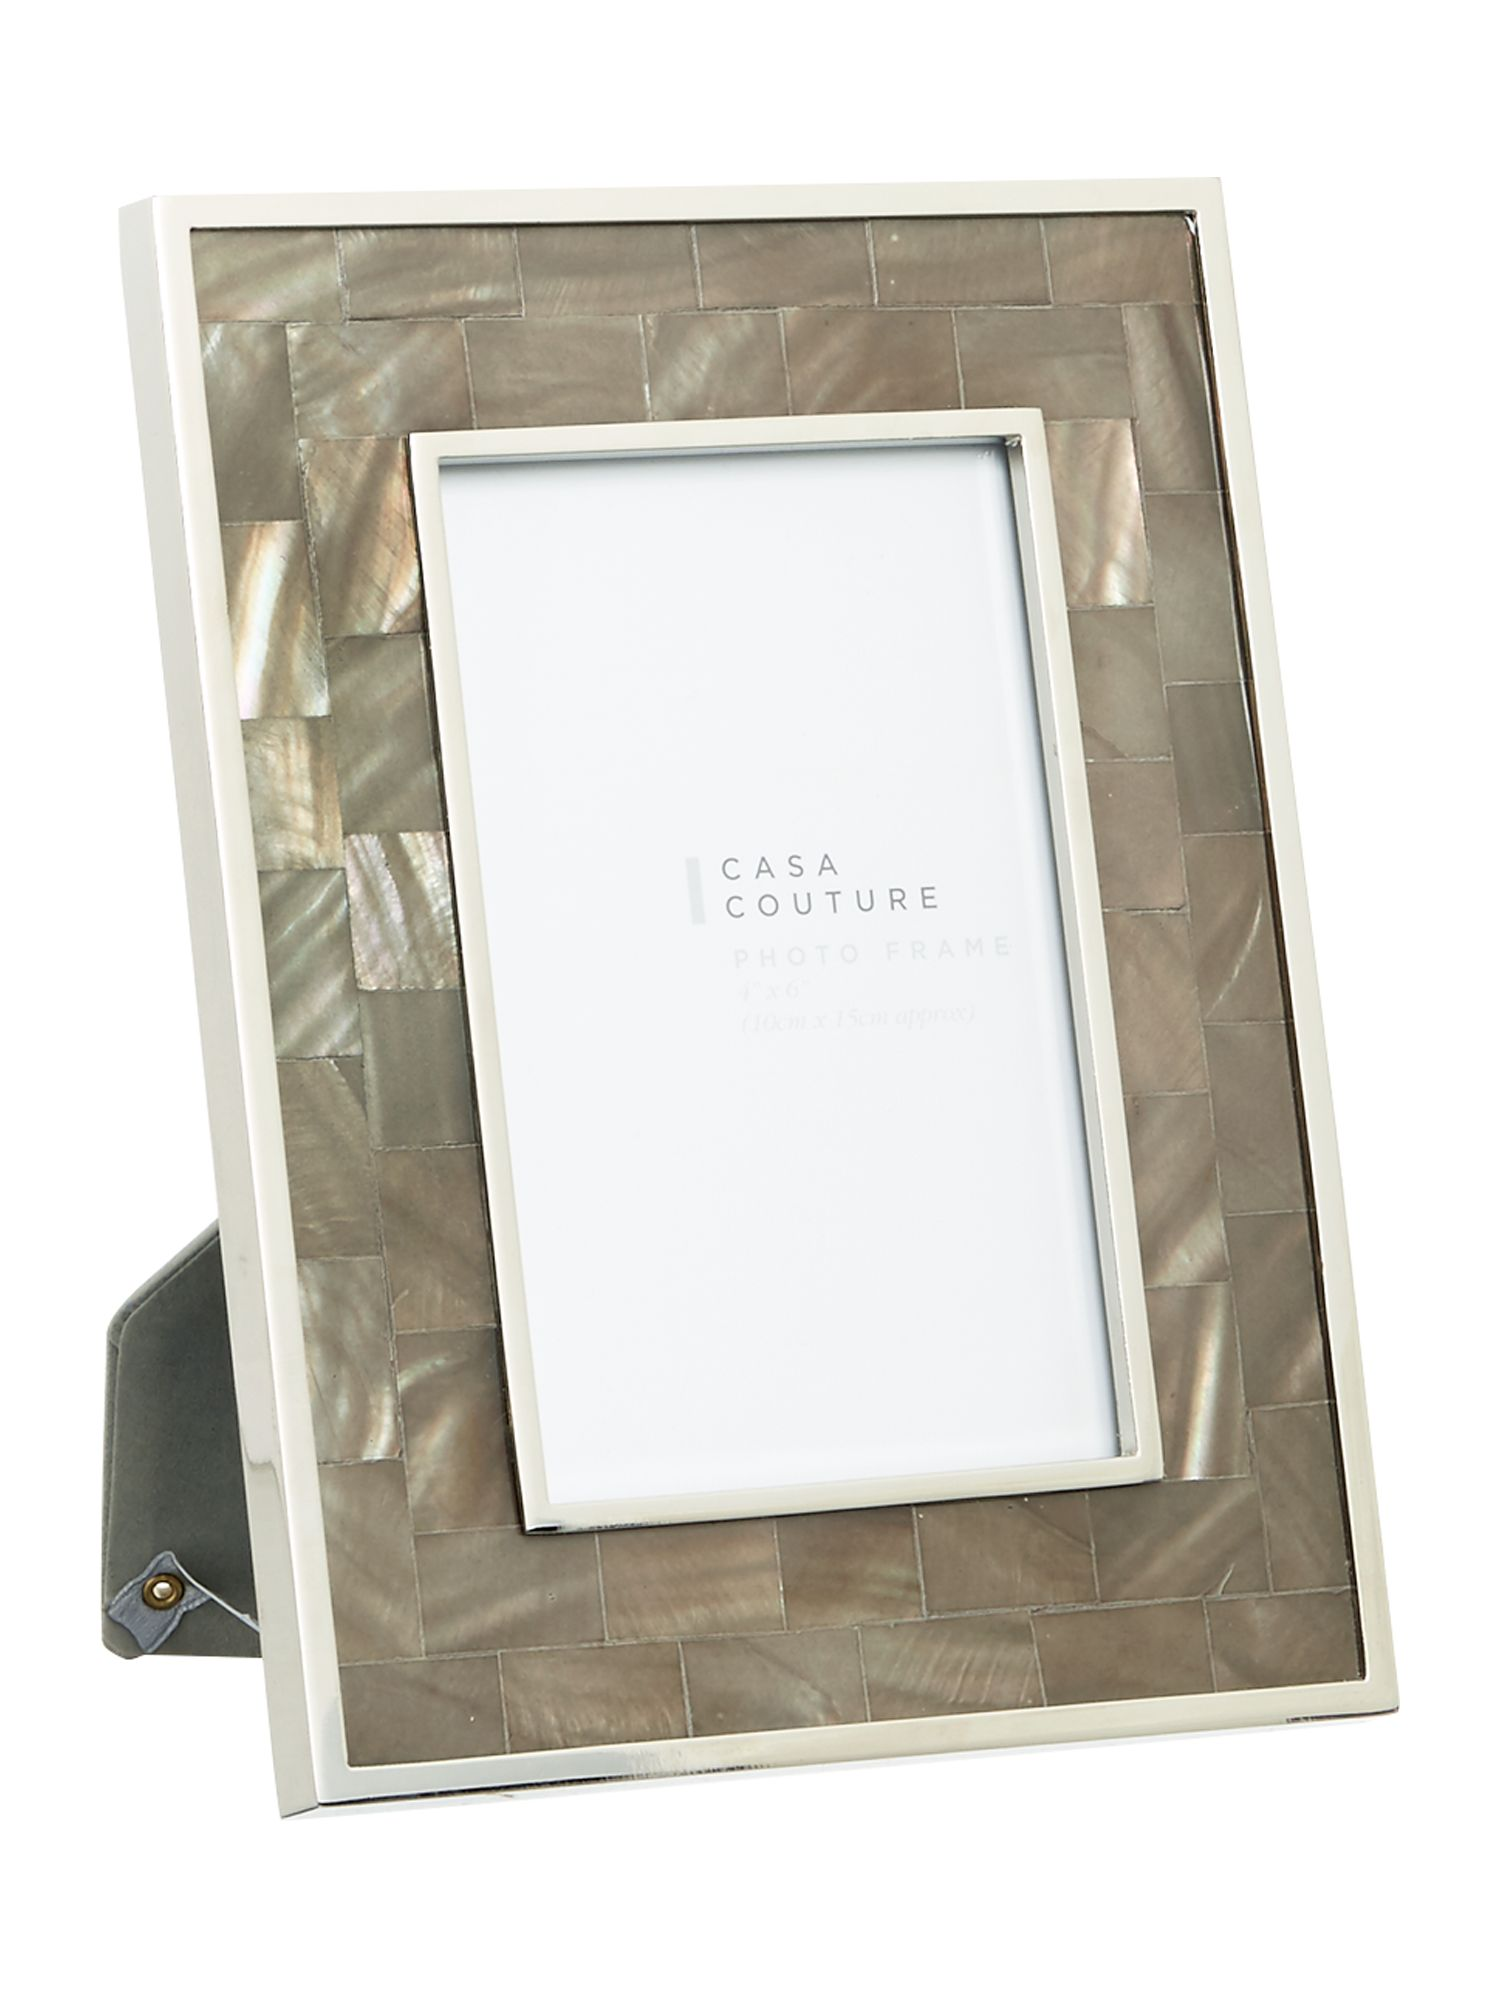 Casa Couture Casa Couture Grey Mother of pearl frame 4 x 6